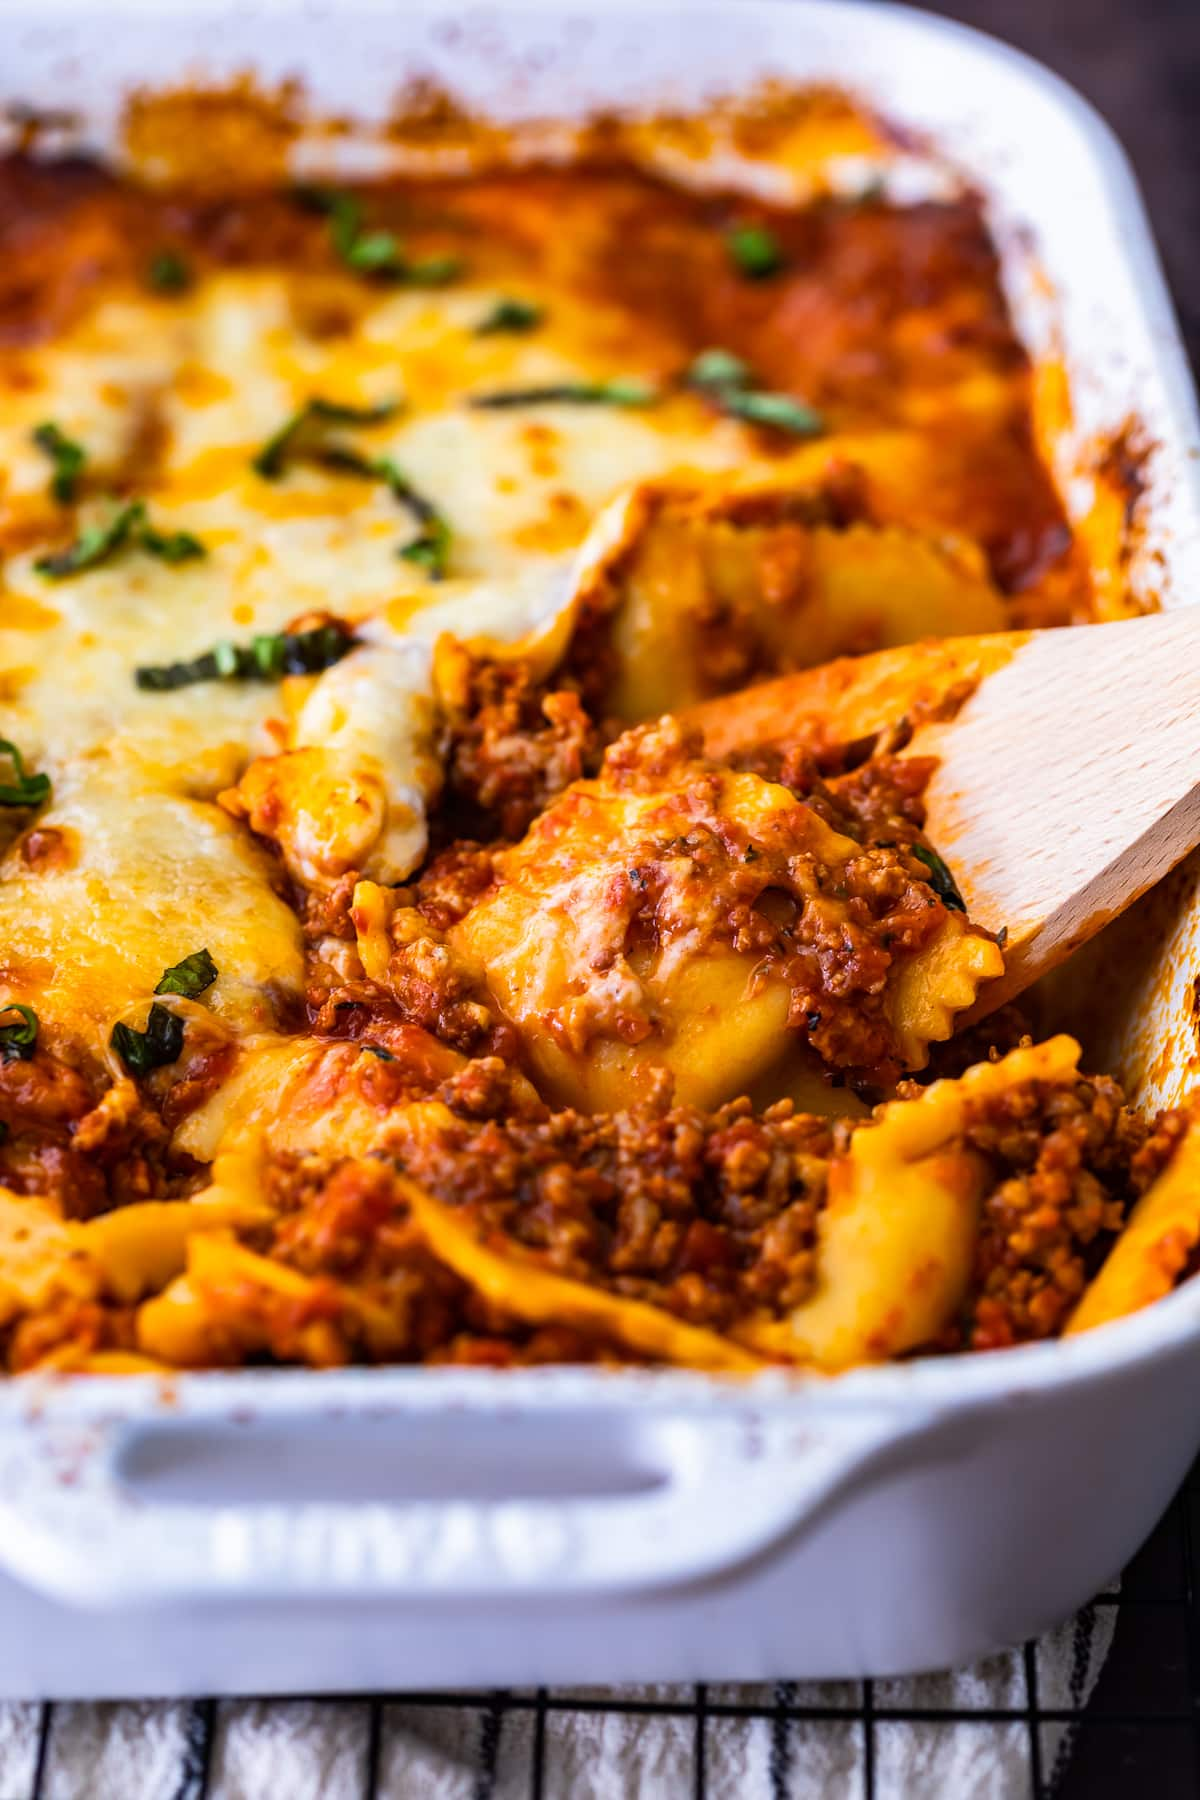 ravioli lasagna bake with sausage and cheese